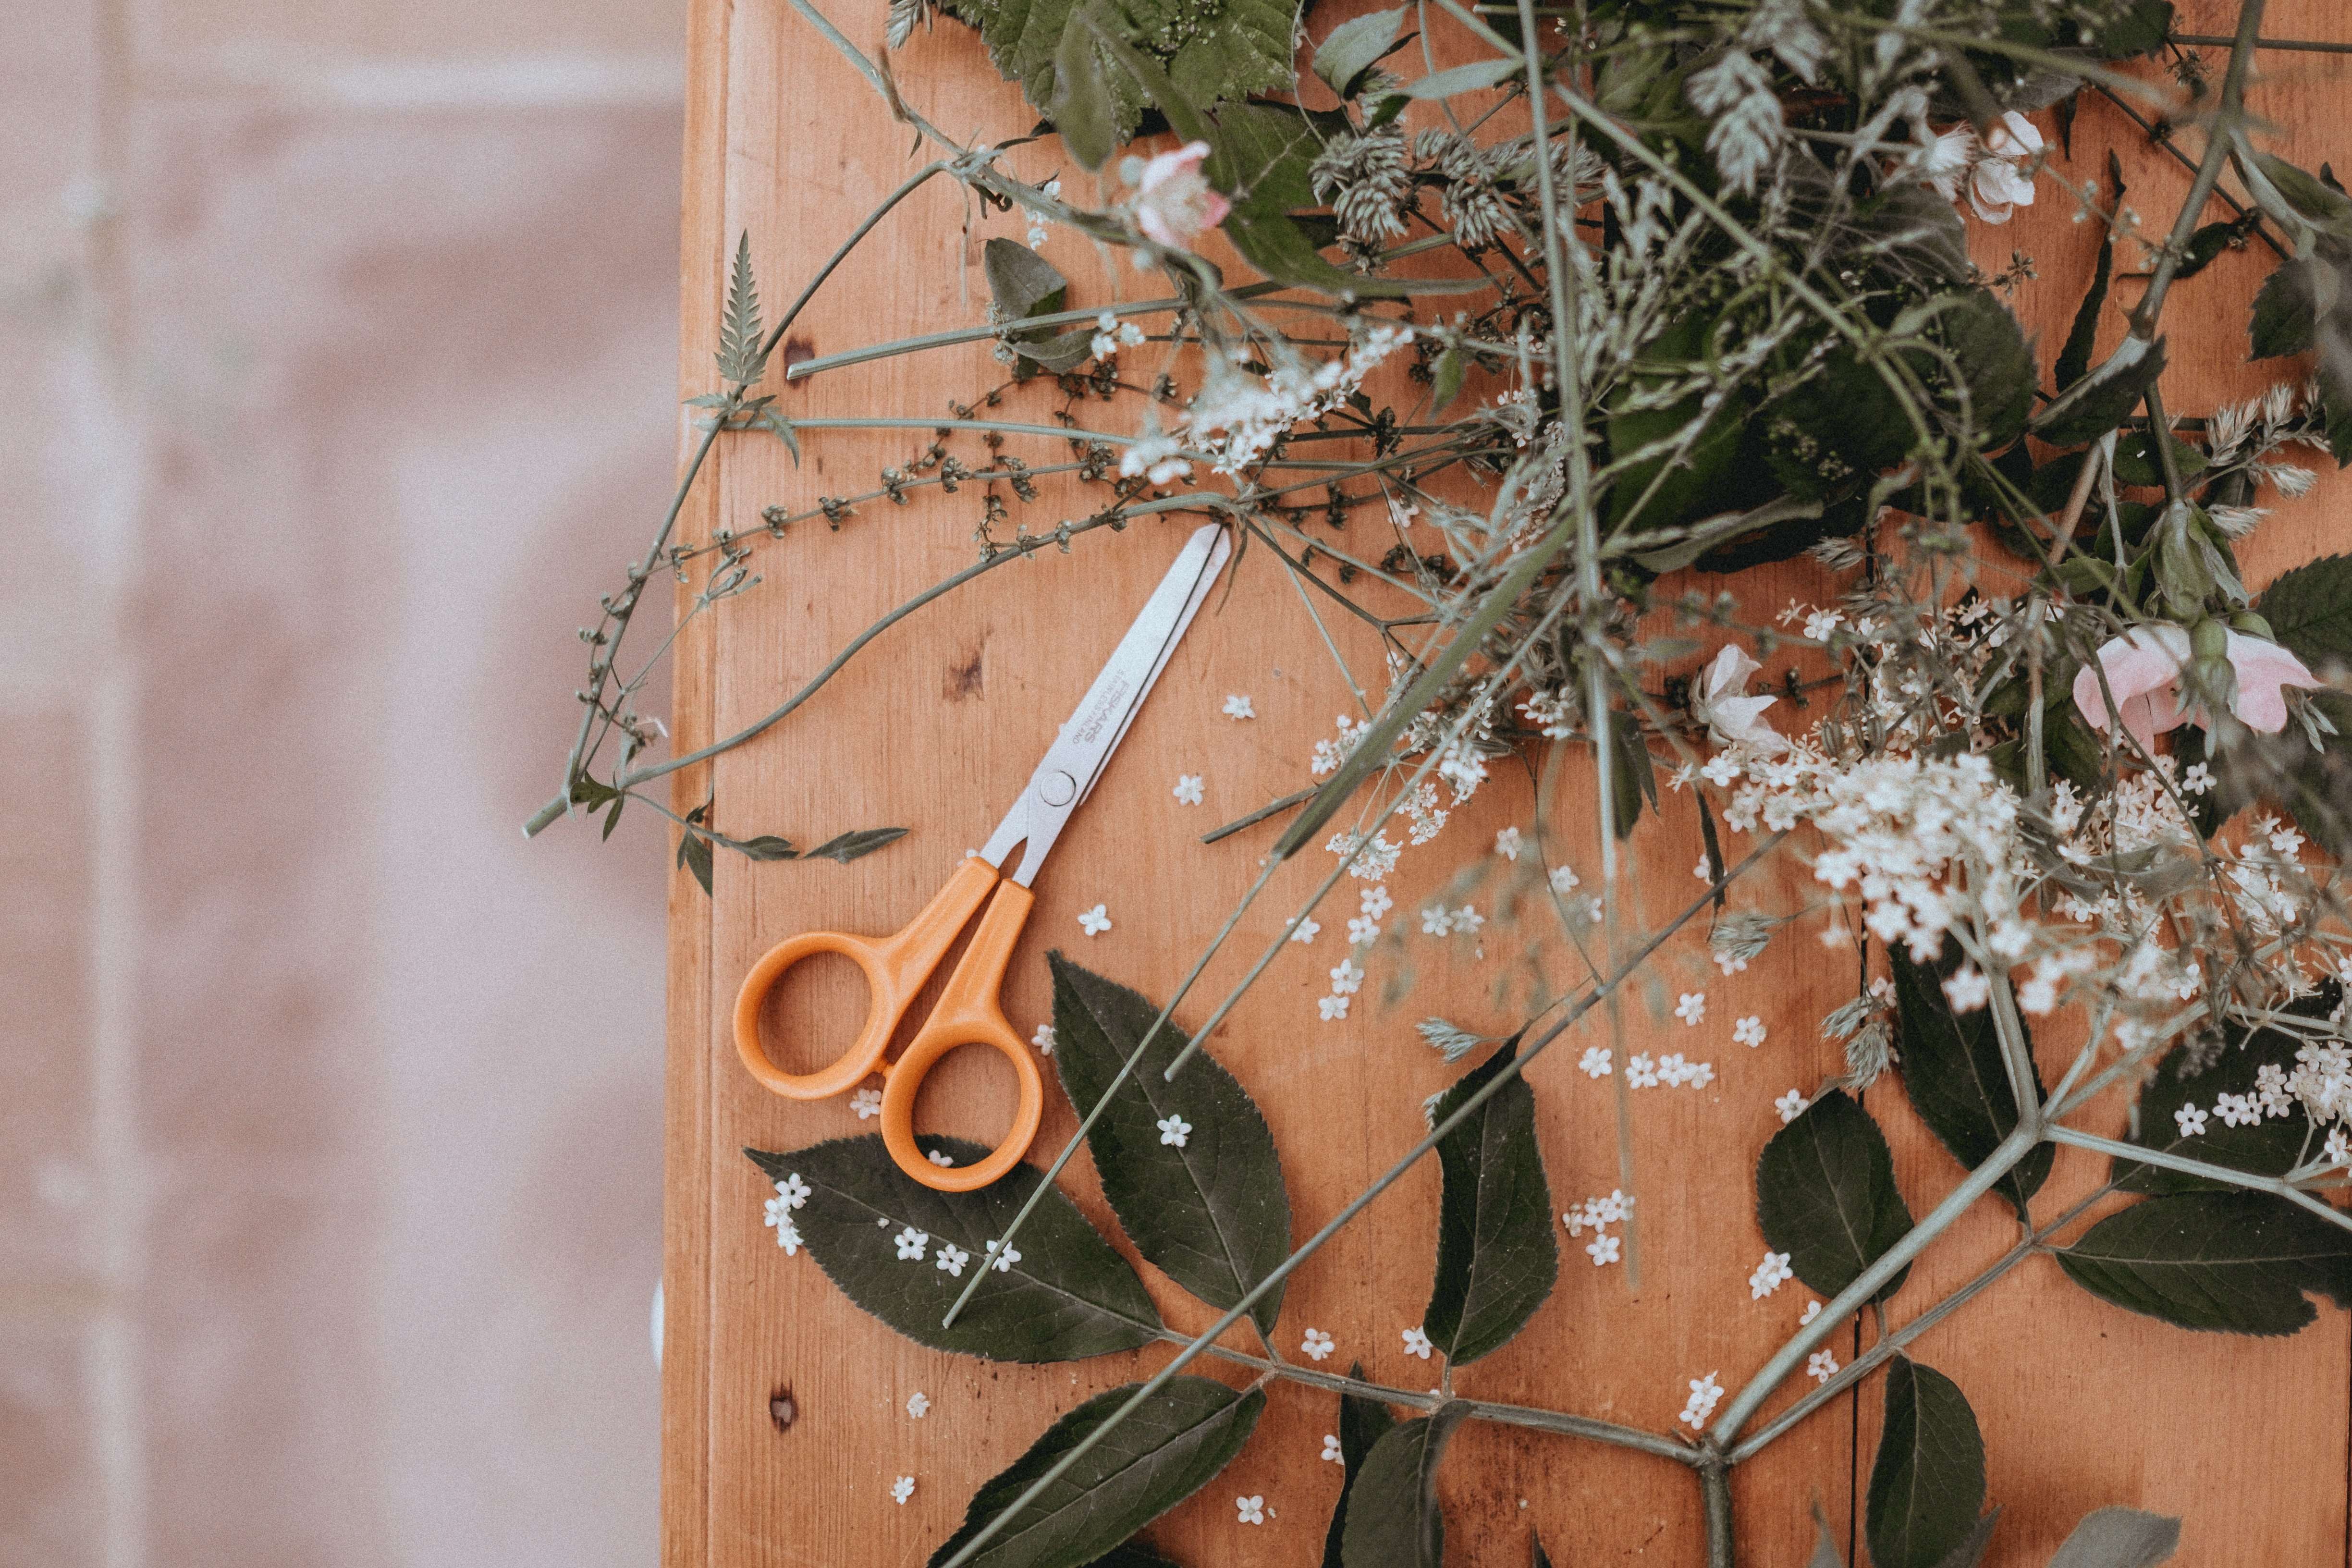 Best Flower Clippers in 2019